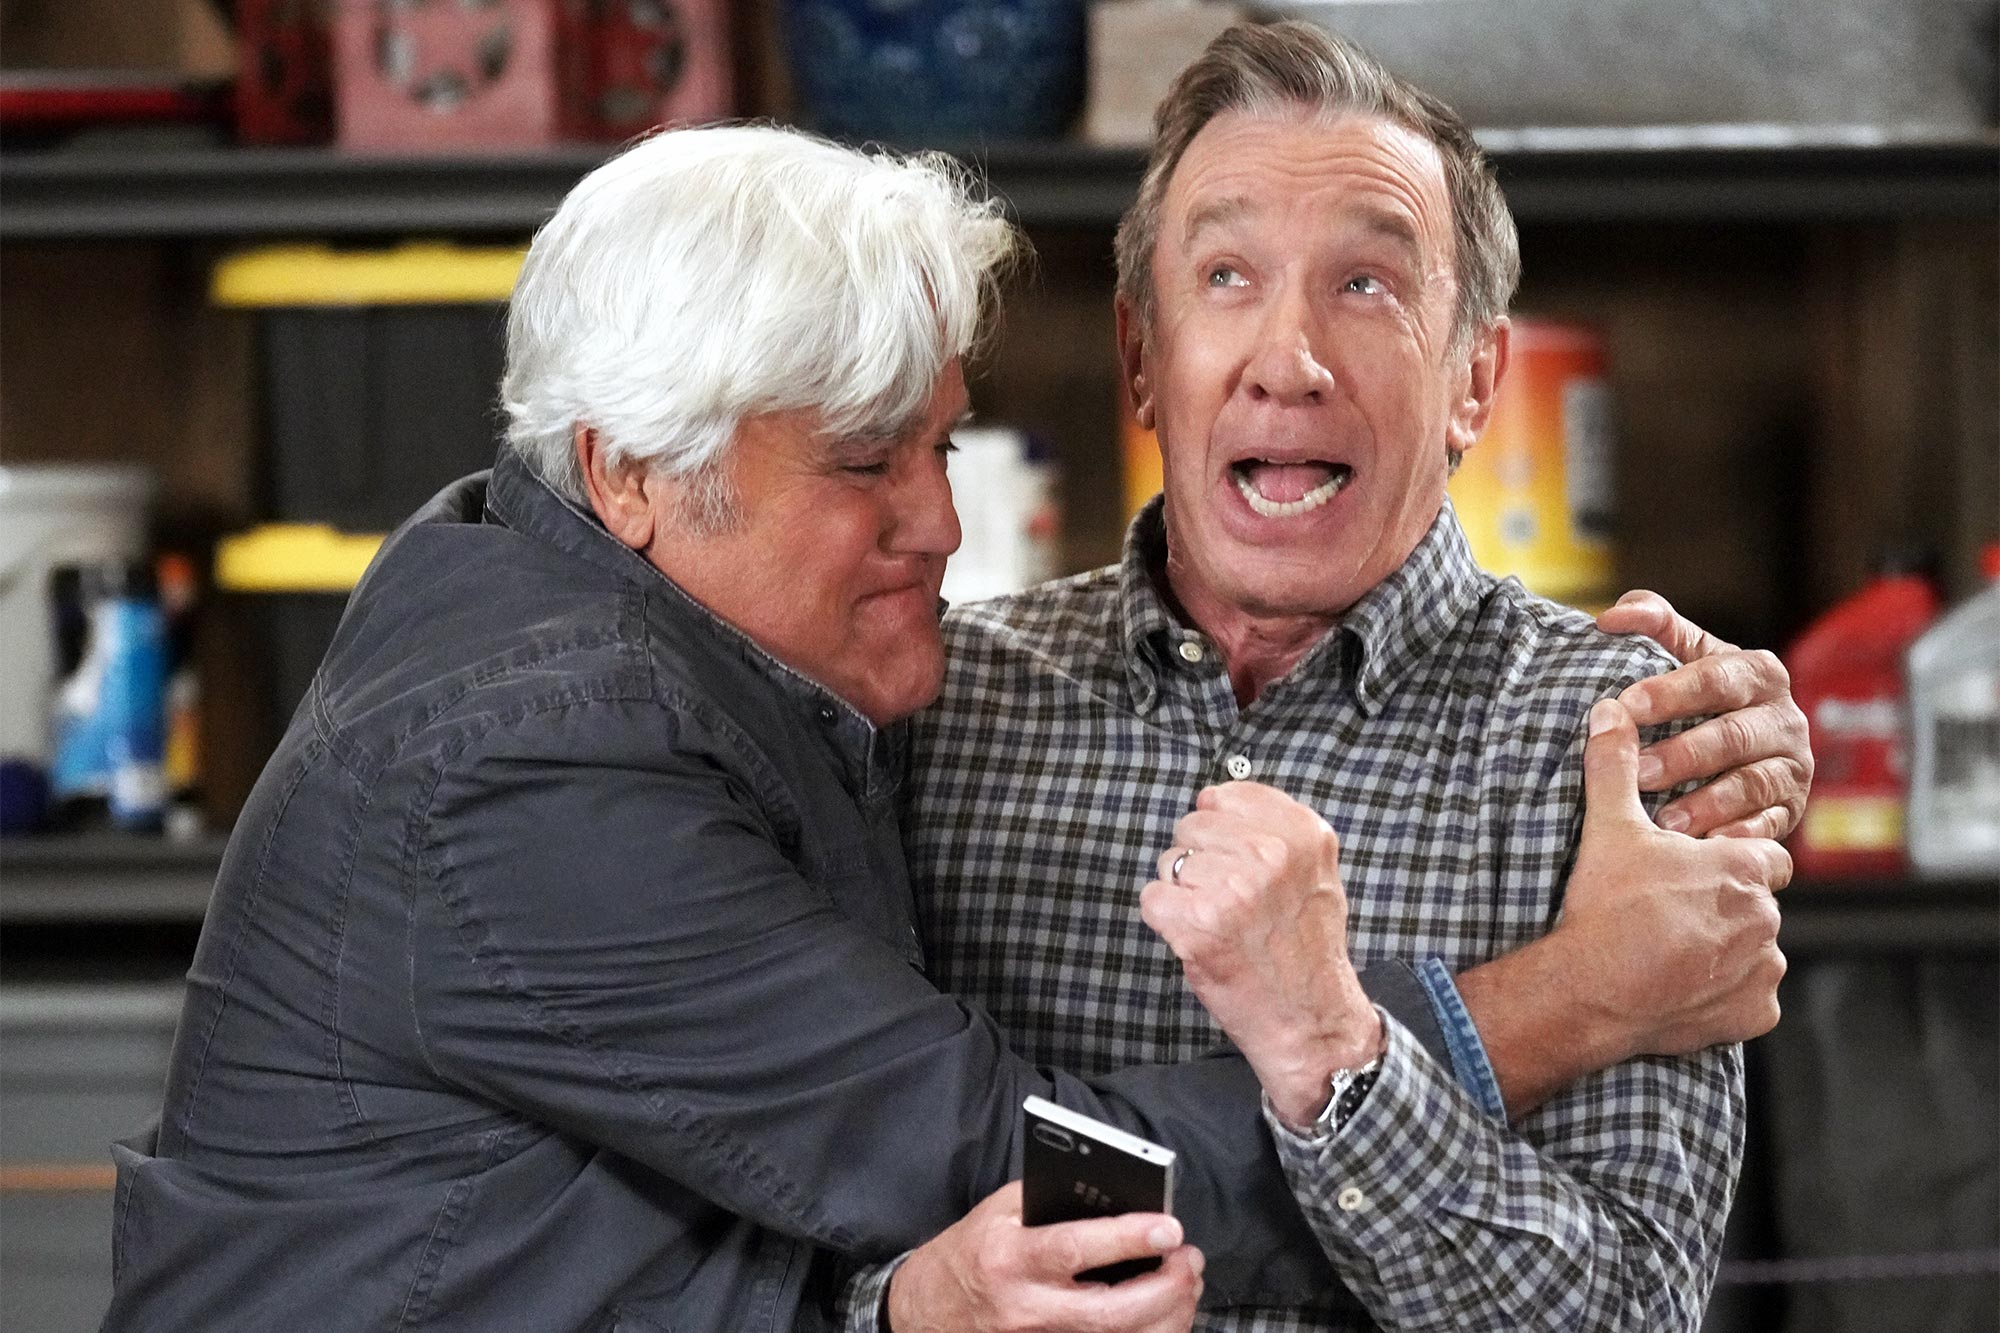 Jay Leno and Tim Allen on 'Last Man Standing'